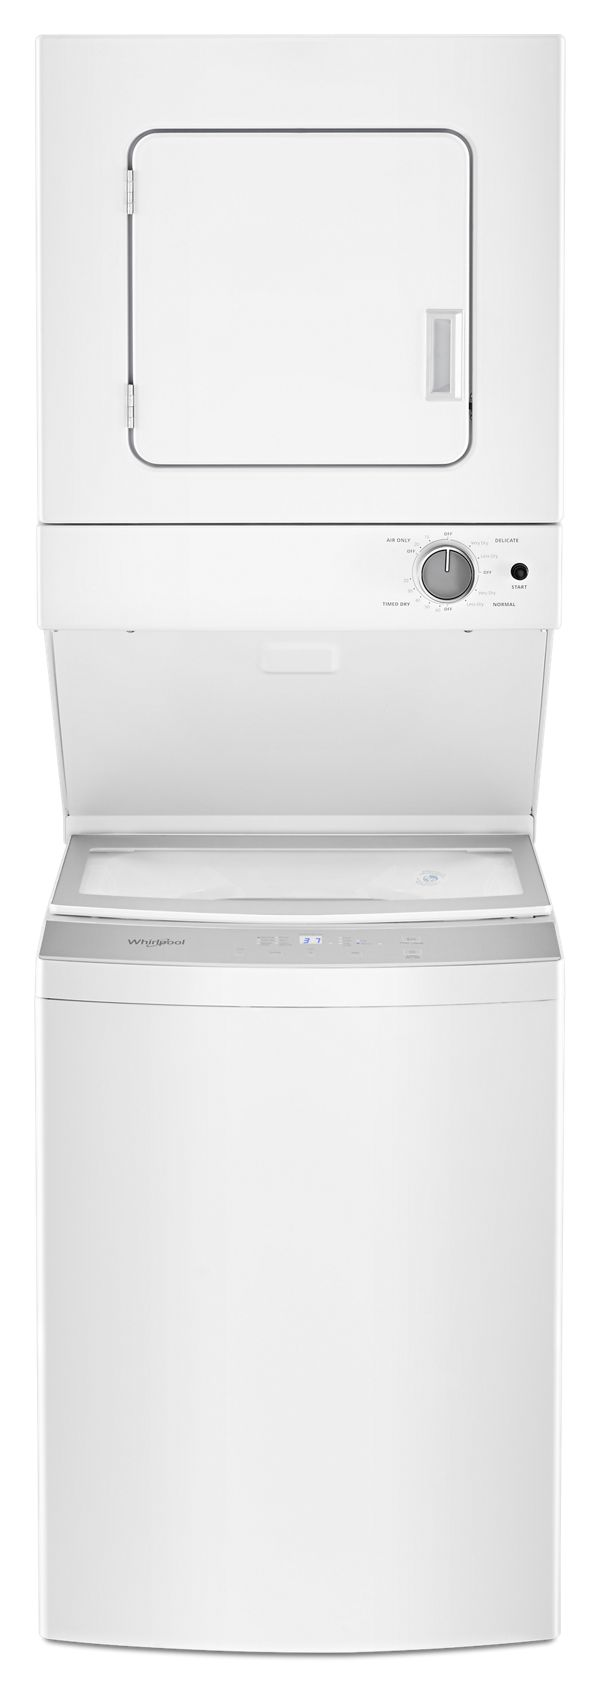 1.8 cu.ft I.E.C. Electric Stacked Laundry Center 6 Wash cycles and AutoDry™